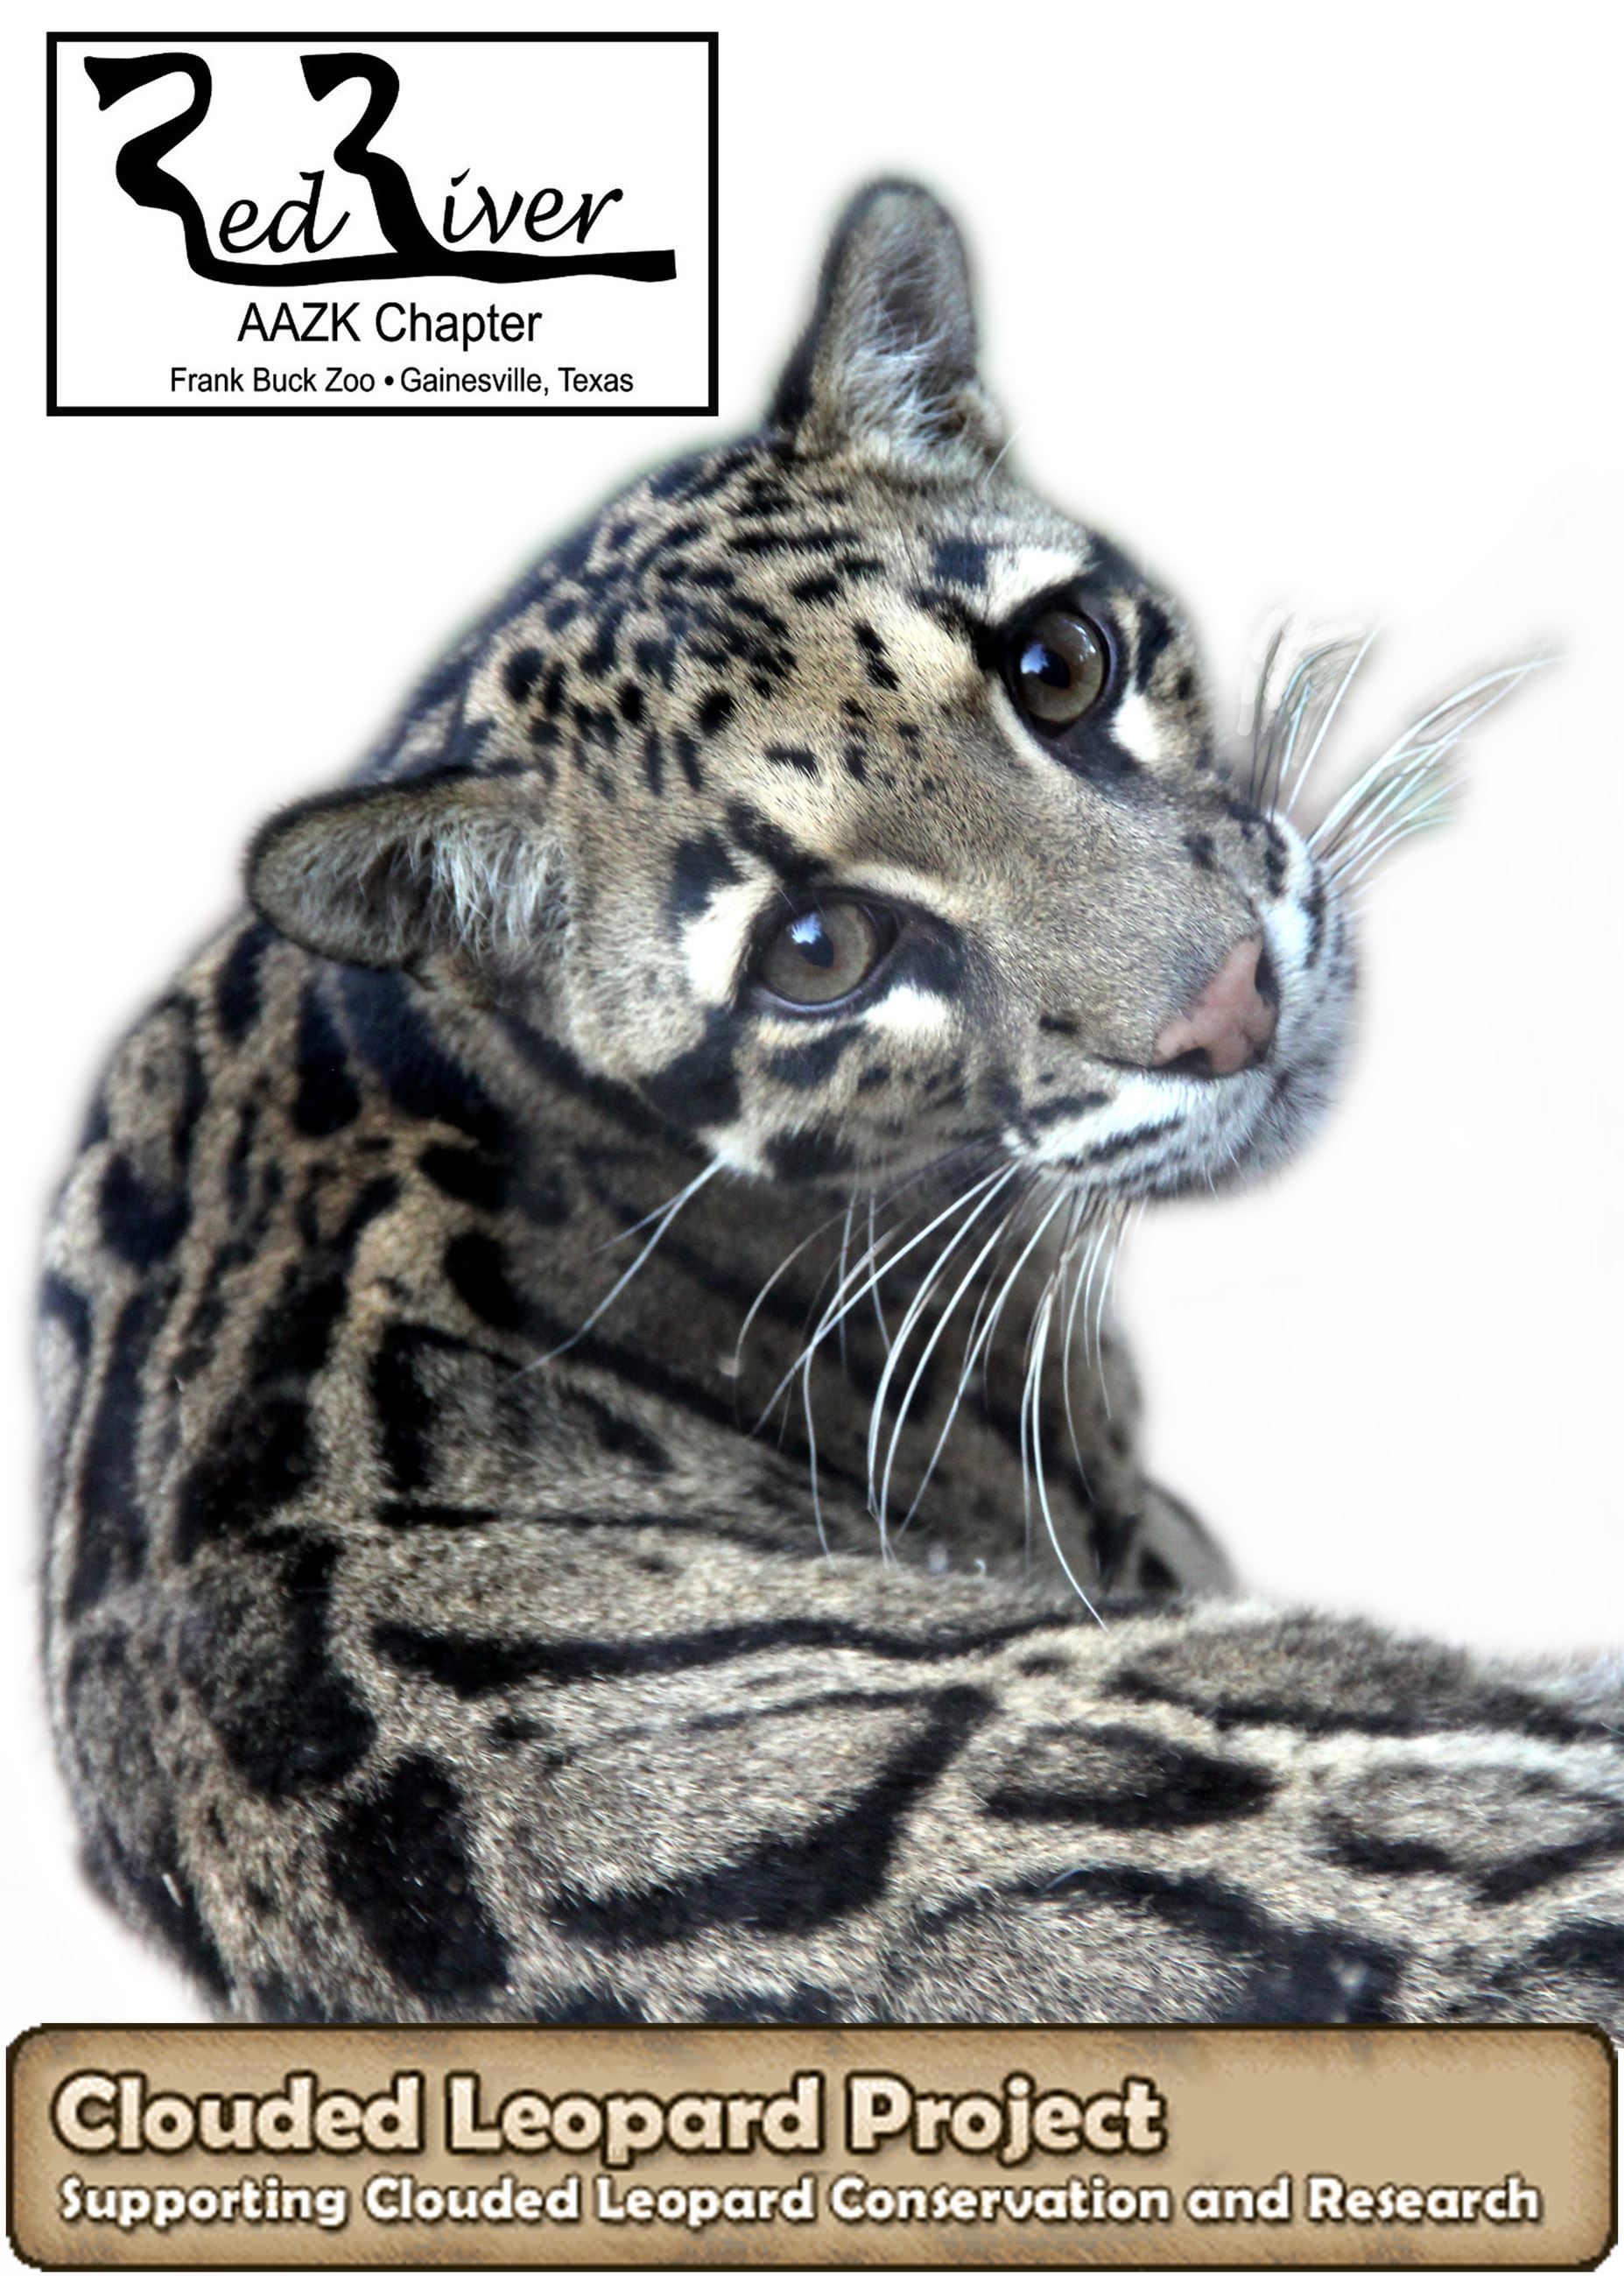 Clouded Leopard Project